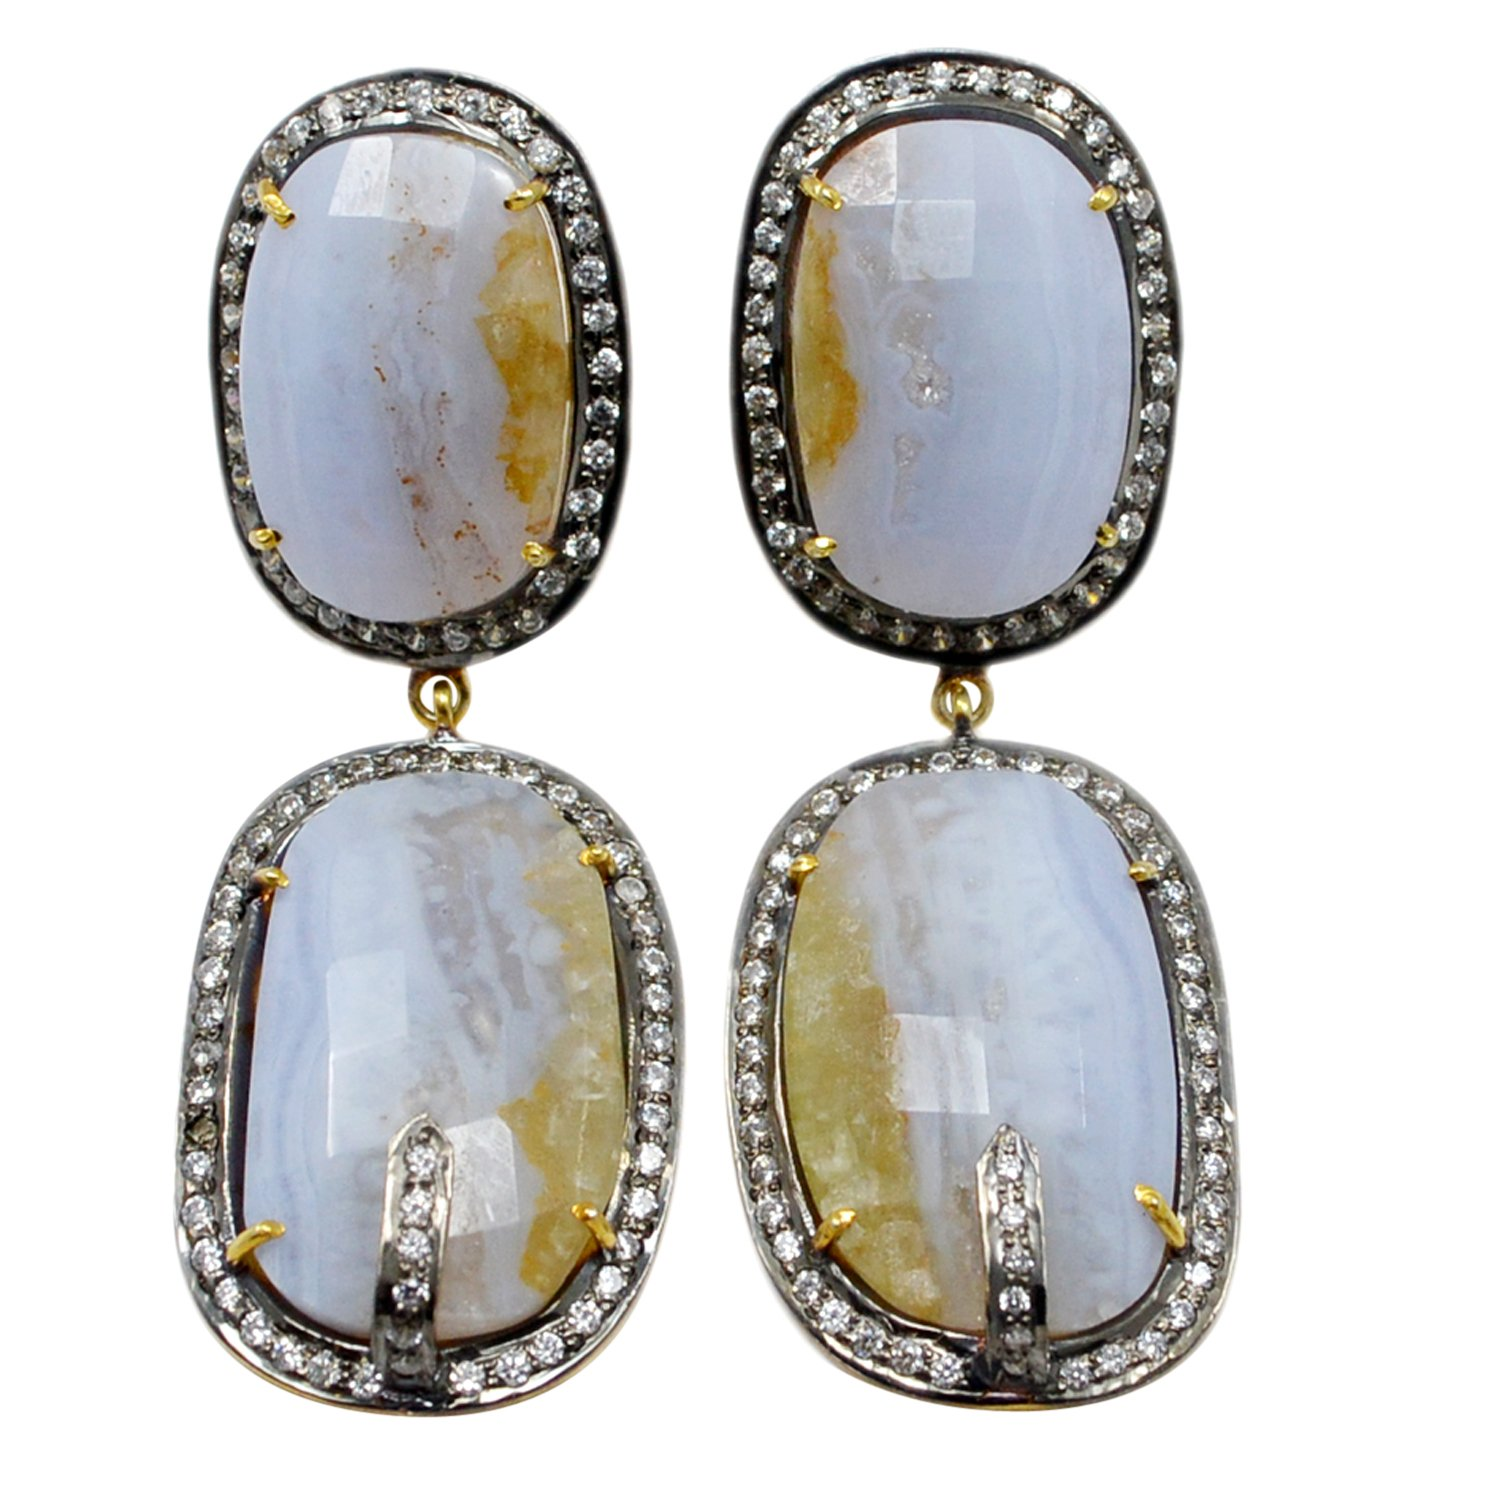 Blue Lace Agate /& Cubic Zircon Handmade Jewelry Manufacturer Blue Earring Simple Minimal Earring Jaipur Rajasthan India Vermeil 925 Sterling Silver